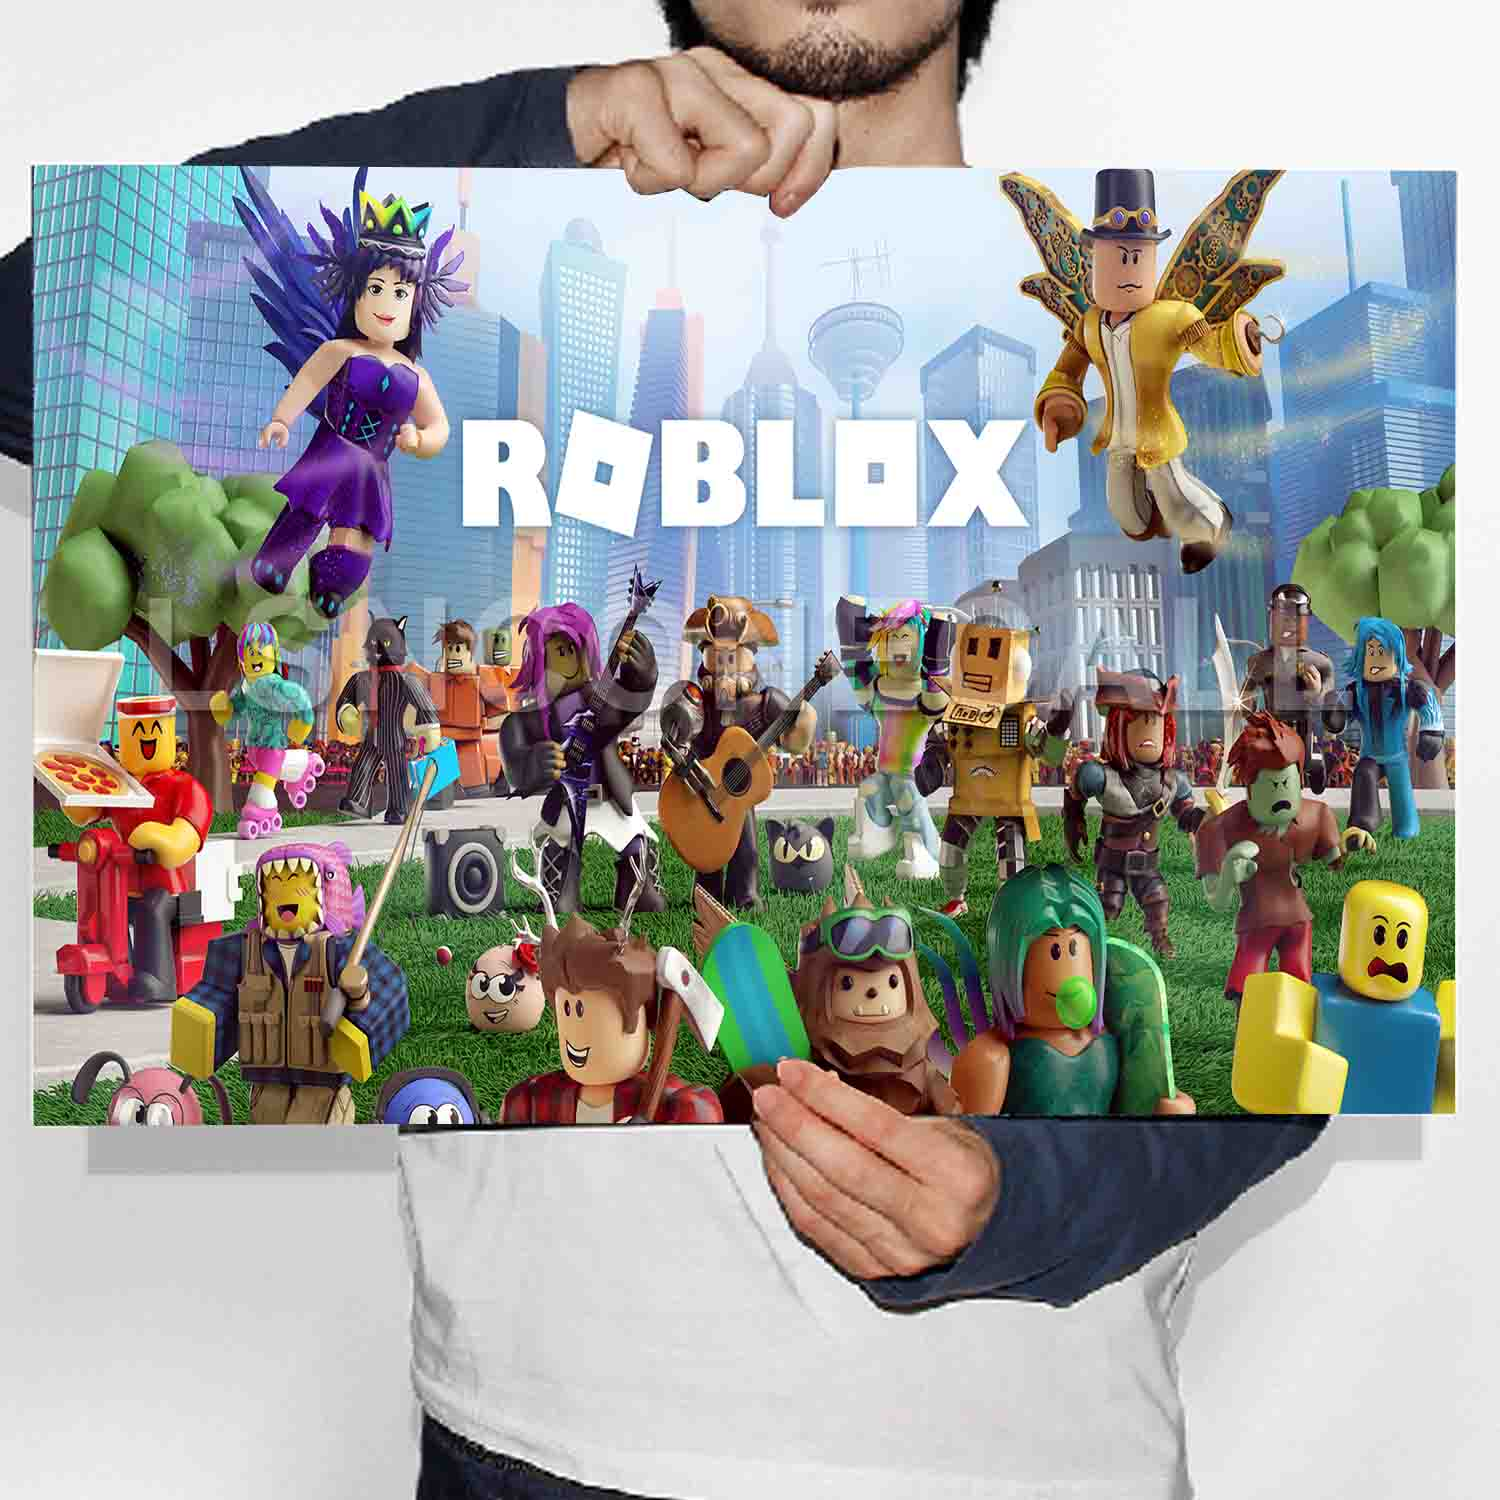 Roblox Poster Print Art Wall Decor lsnconecall - lsnconecall